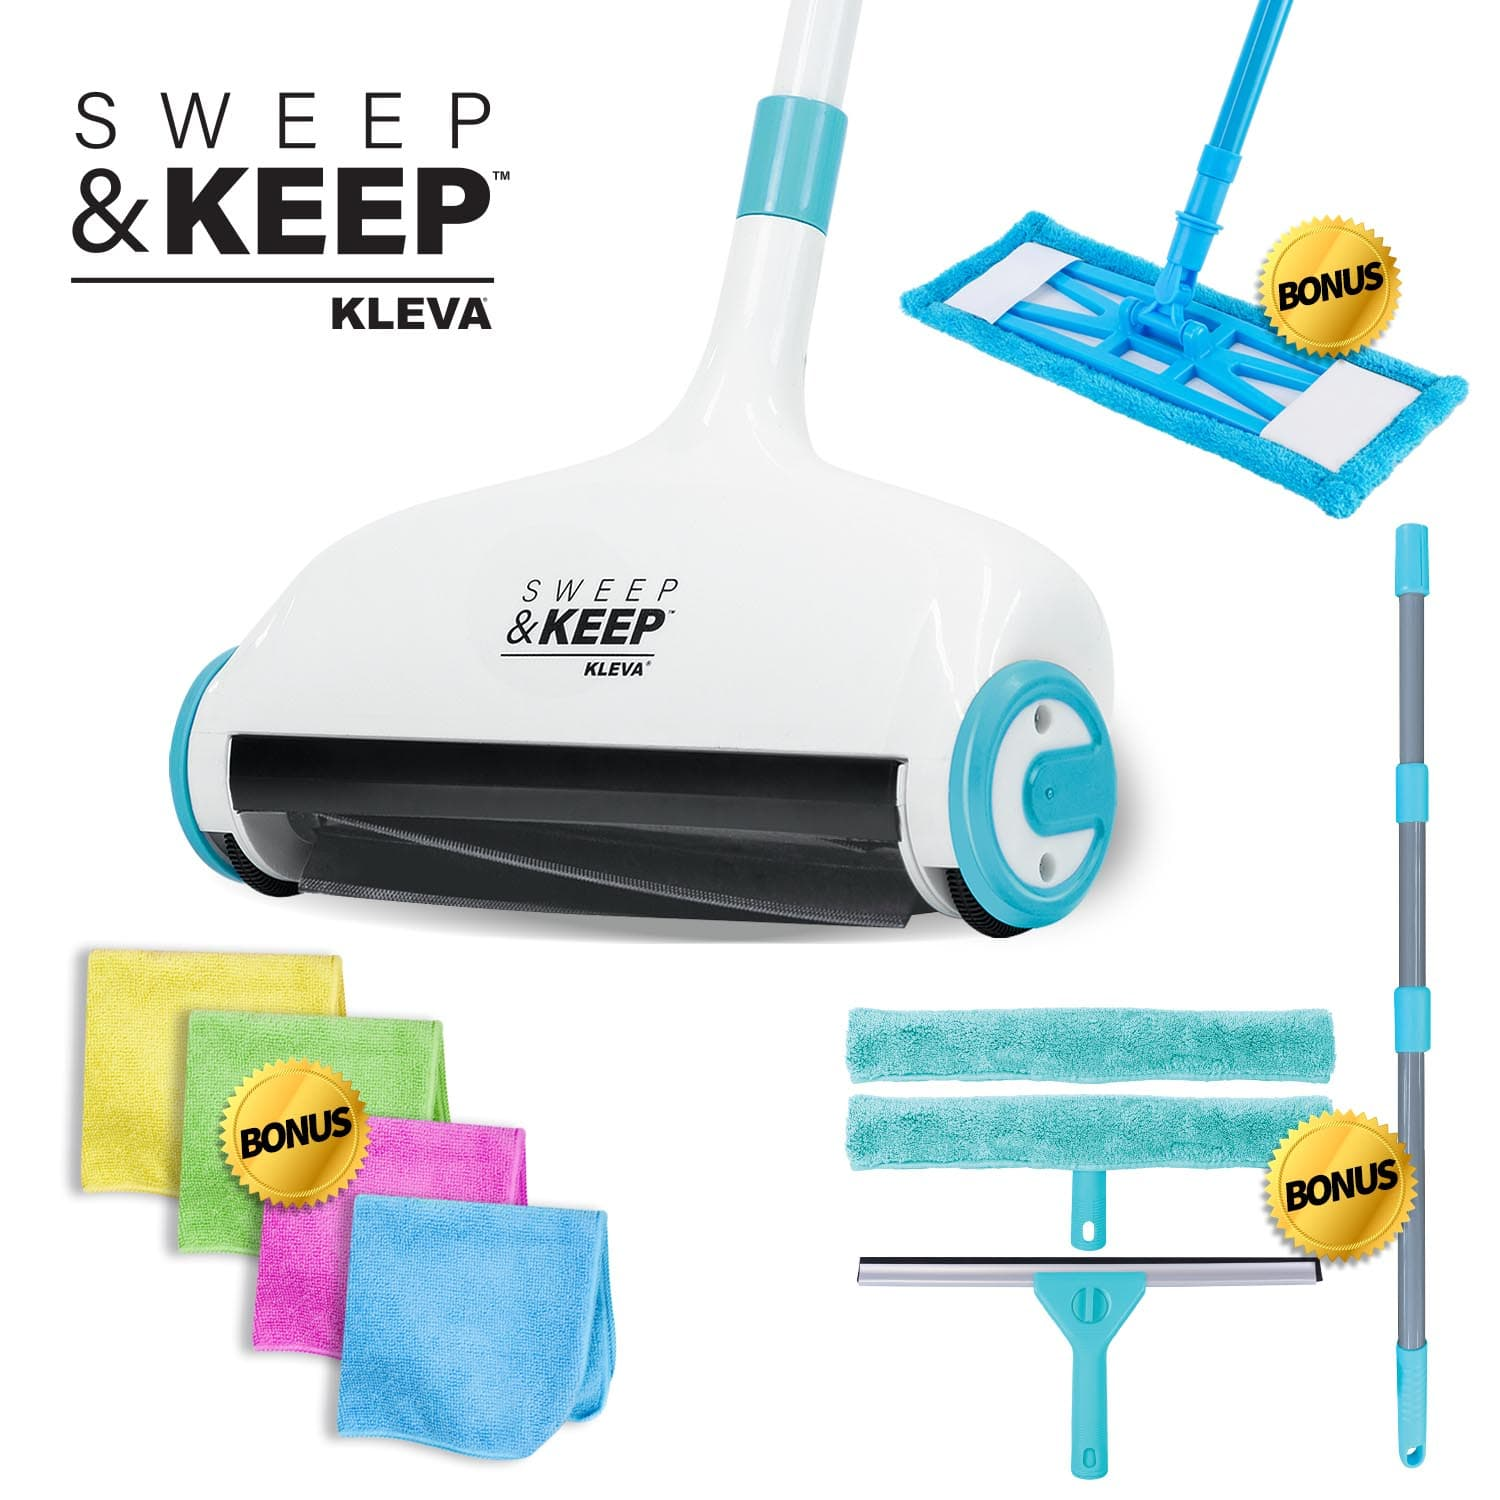 Kleva Sweep and Keep TV Deal